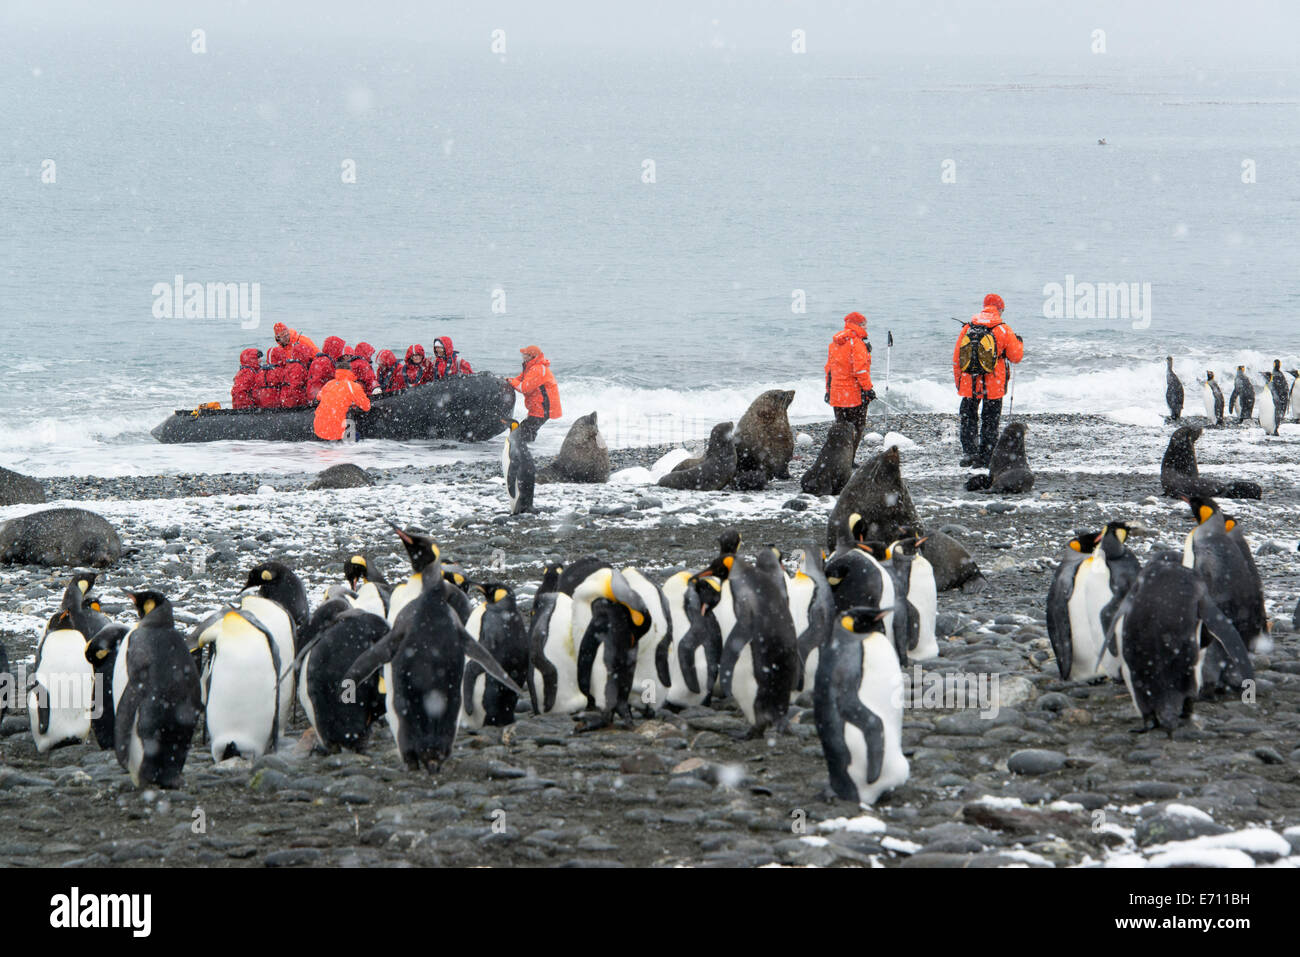 Travellers in bright orange waterproofs observing a group of king penguins and a fur seal on South Georgia Island. - Stock Image